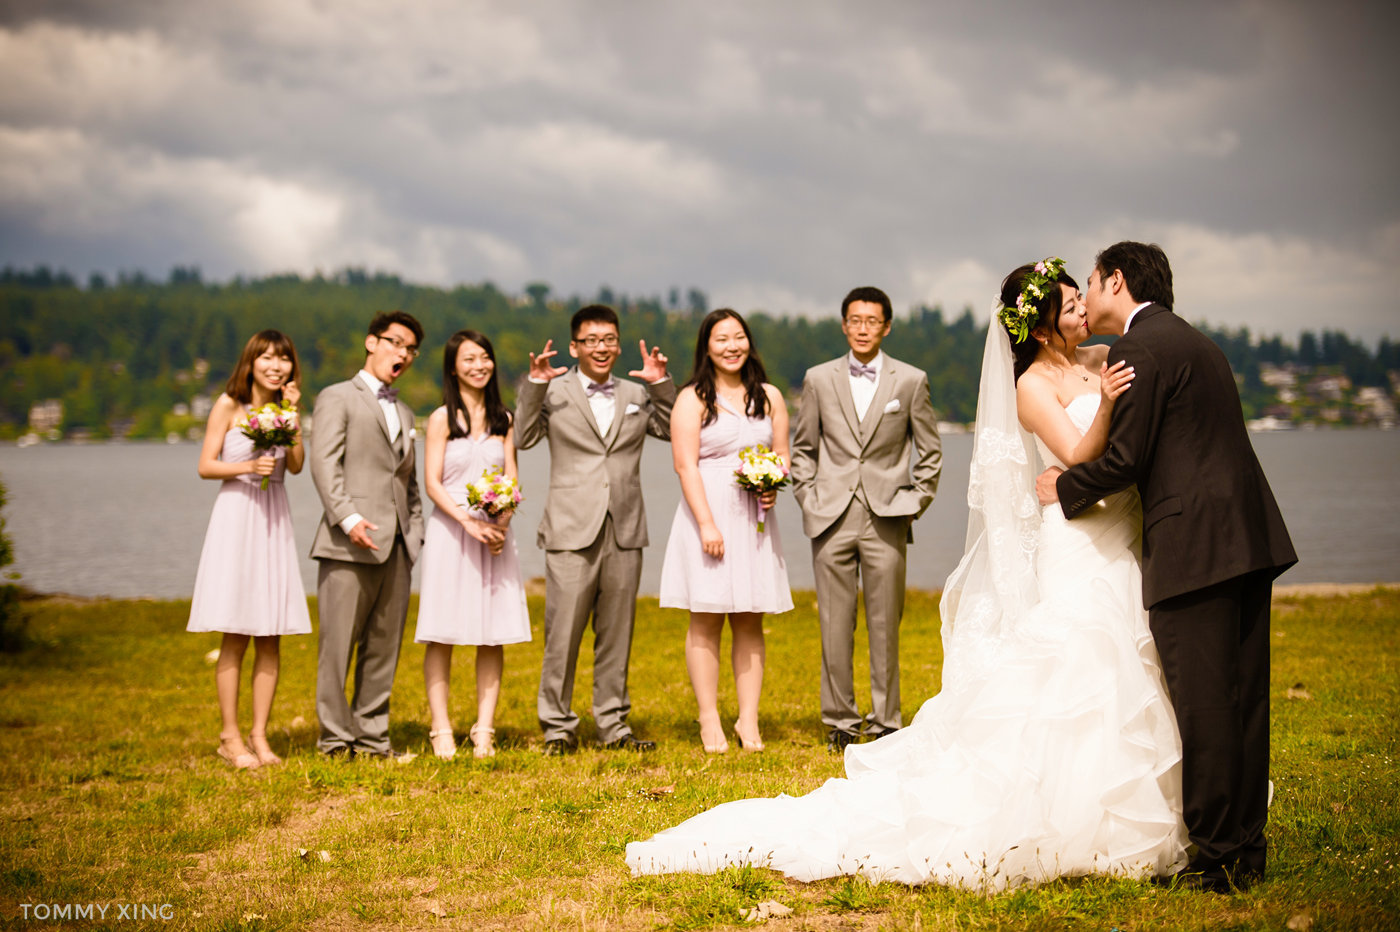 Seattle Wedding and pre wedding Los Angeles Tommy Xing Photography 西雅图洛杉矶旧金山婚礼婚纱照摄影师 115.jpg